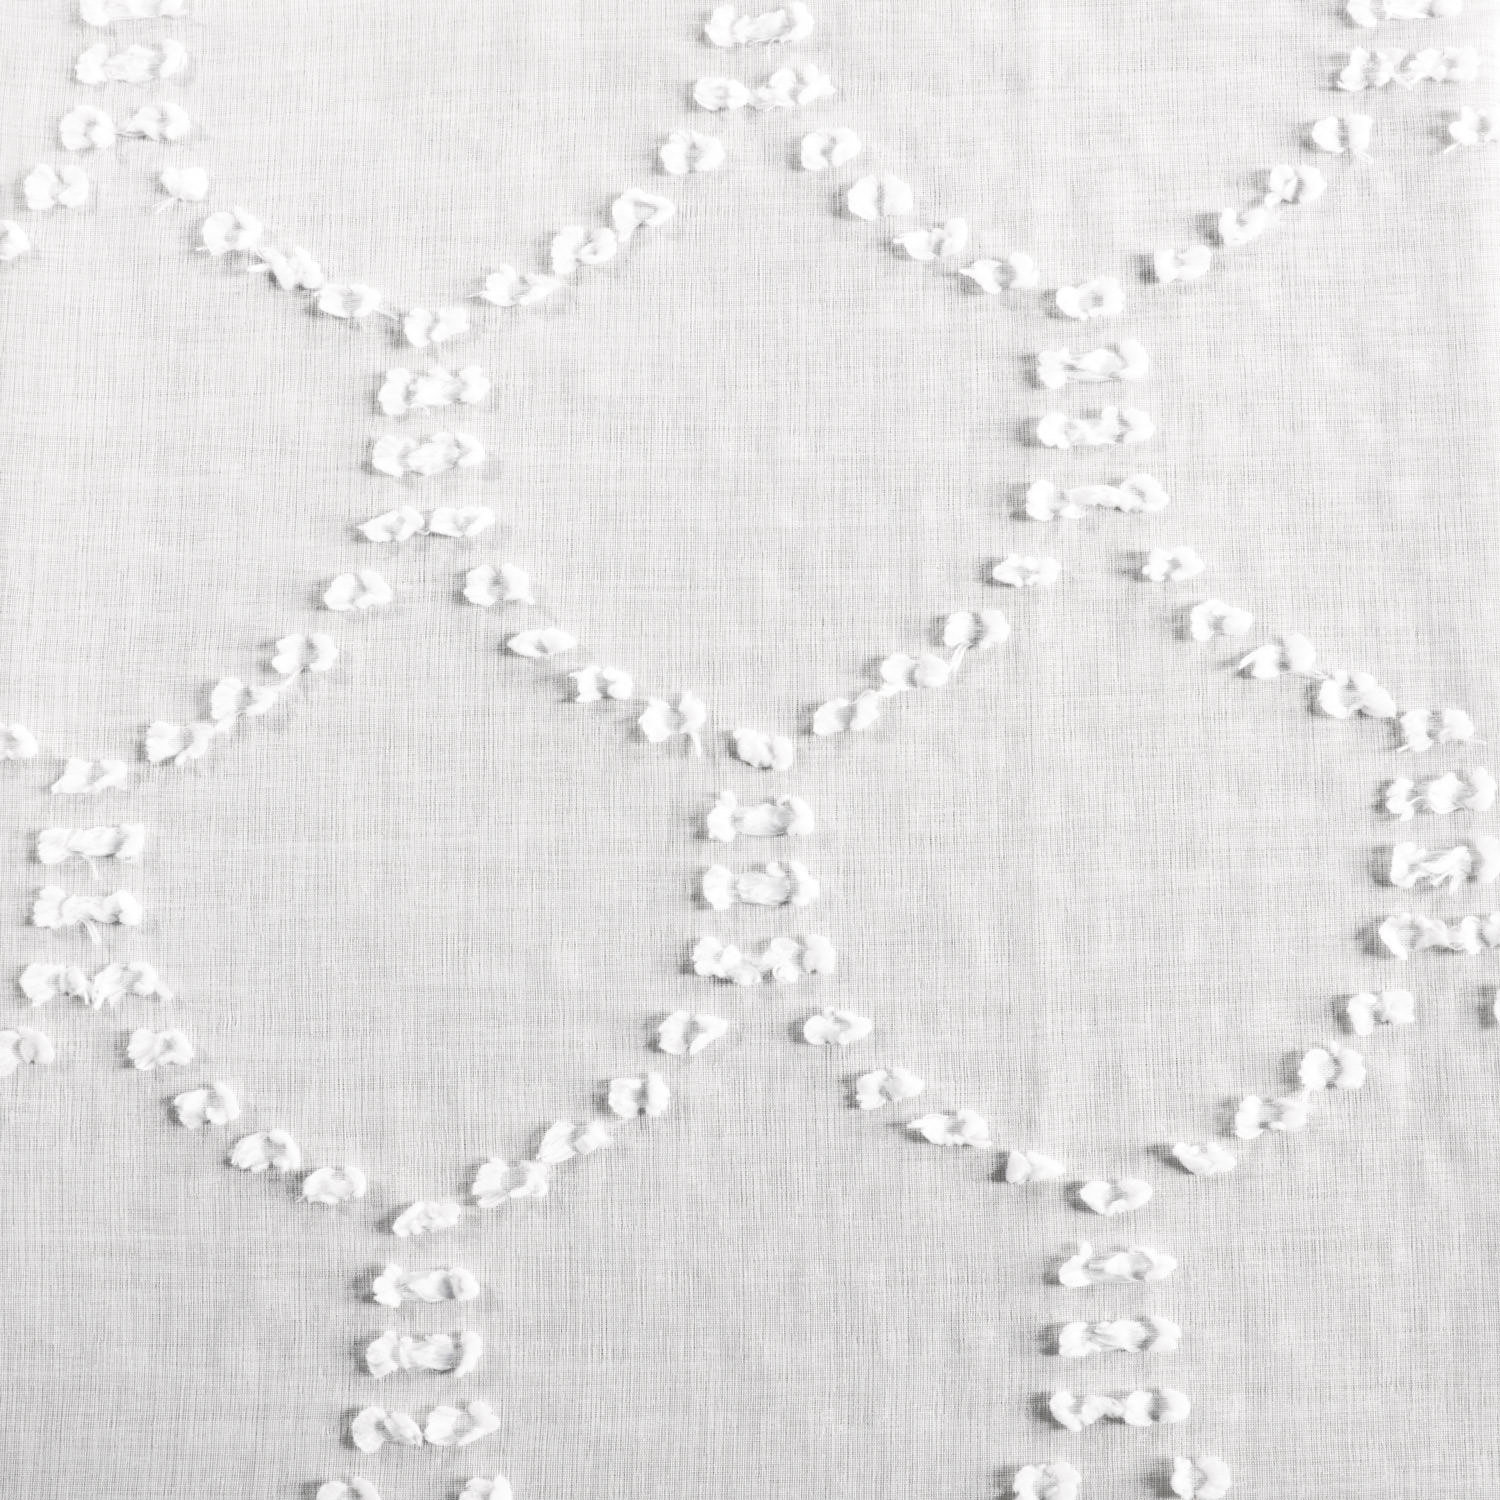 Marseille Shell Patterned Faux Linen Sheer Swatch